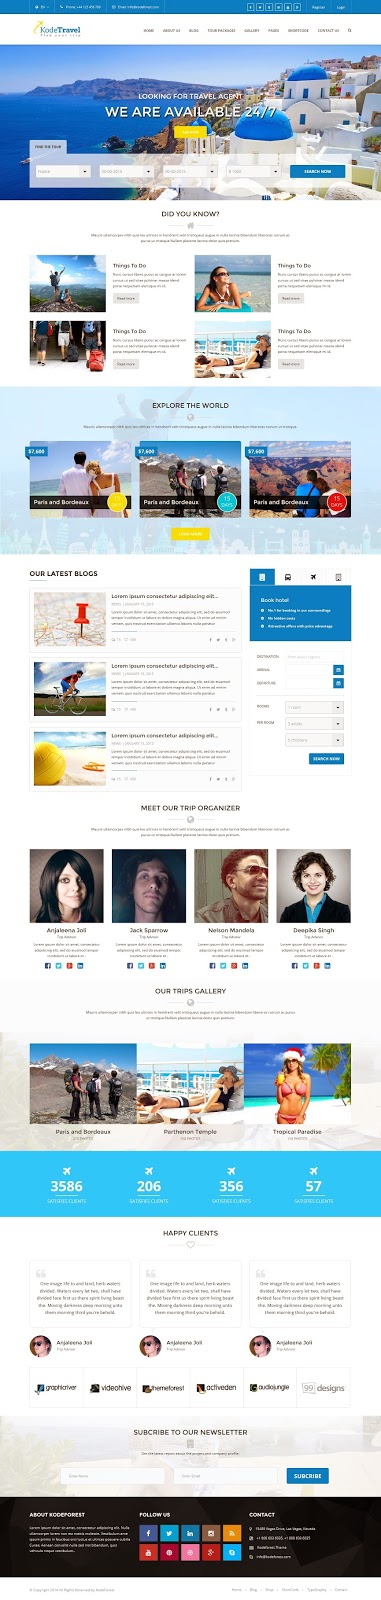 Best Travel and Tourism Bootstrap Template